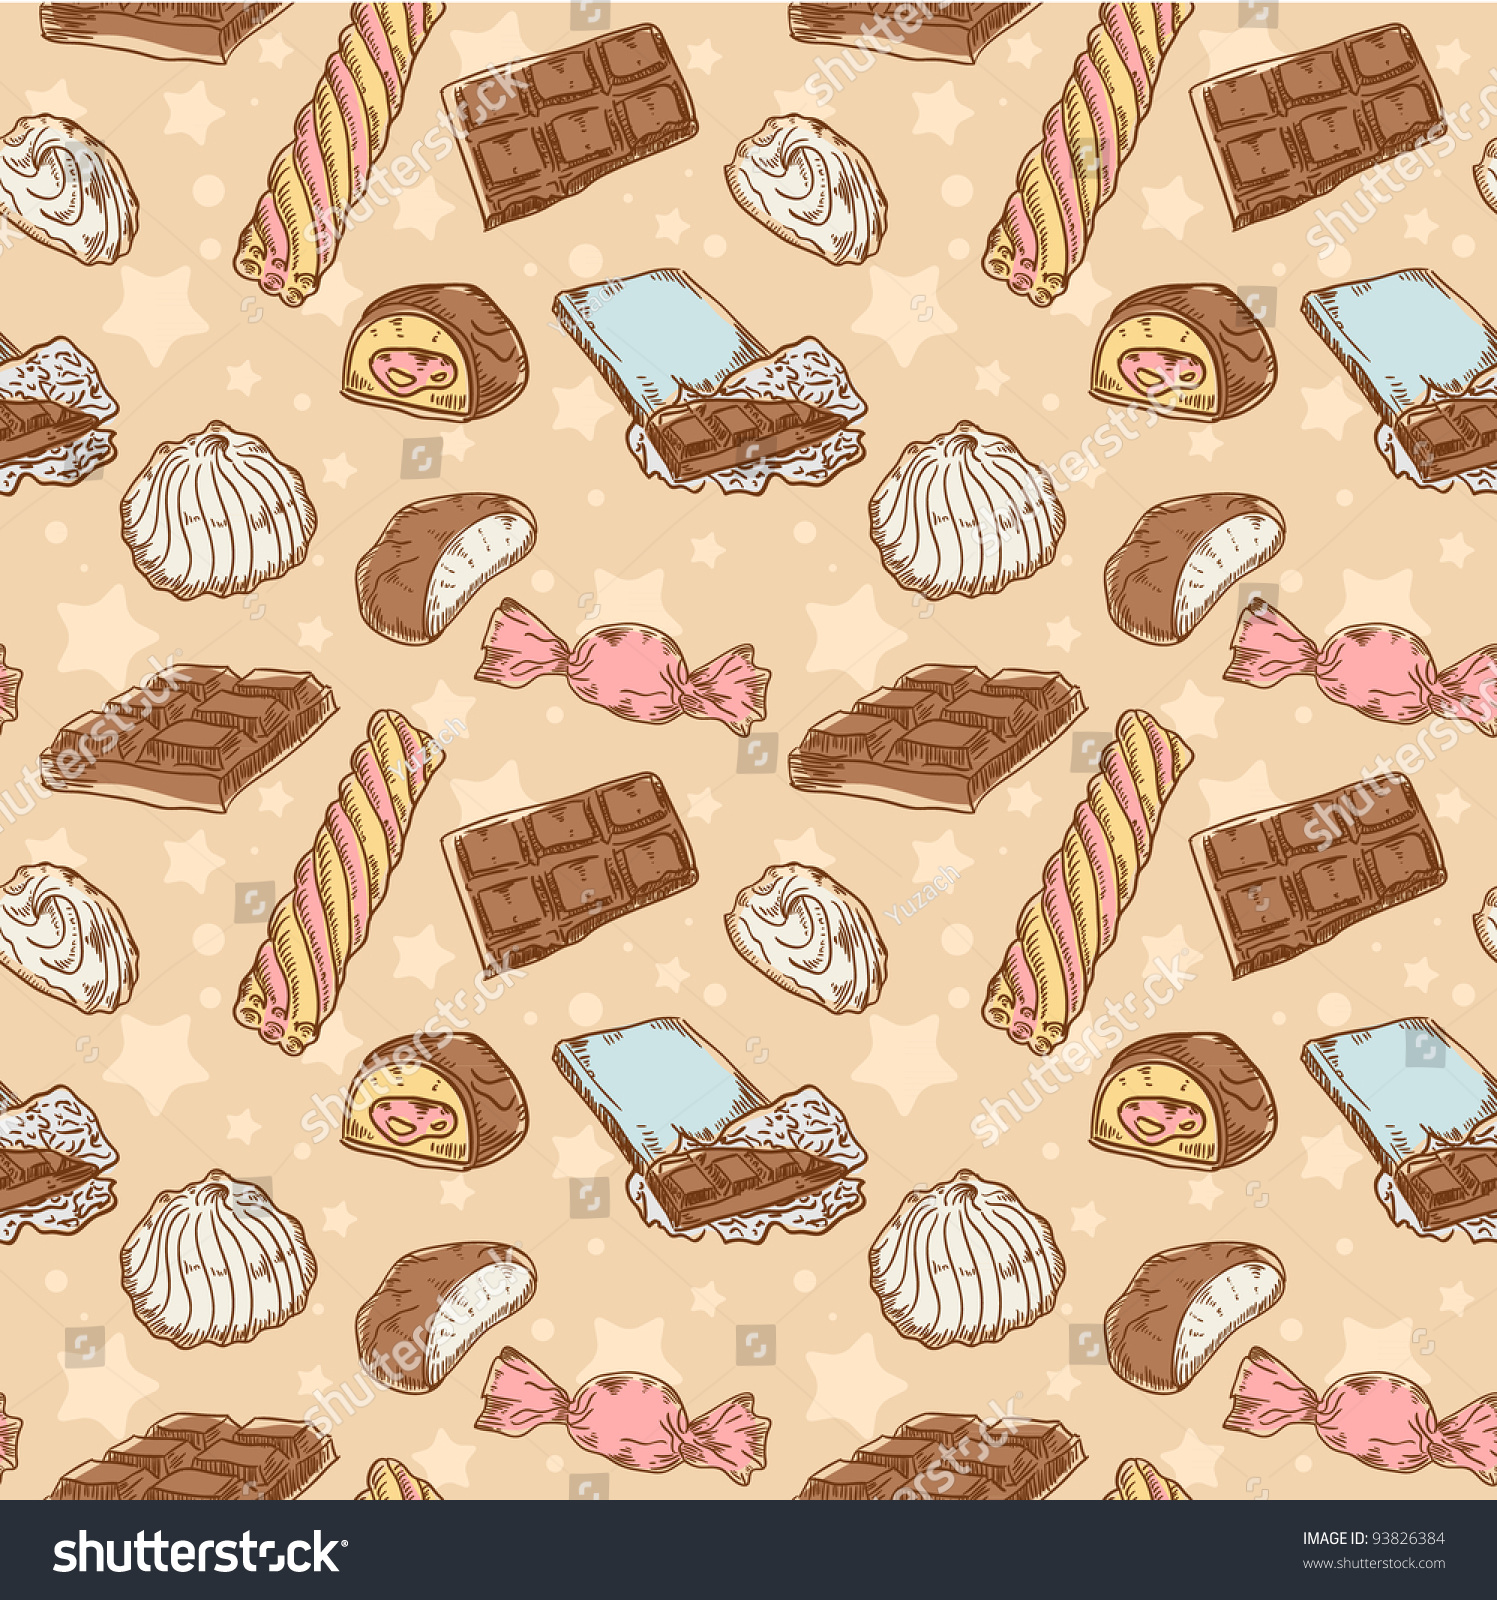 Vintage seamless texture with sweets, candies, chocolate bars and marshmallow on stars and dots